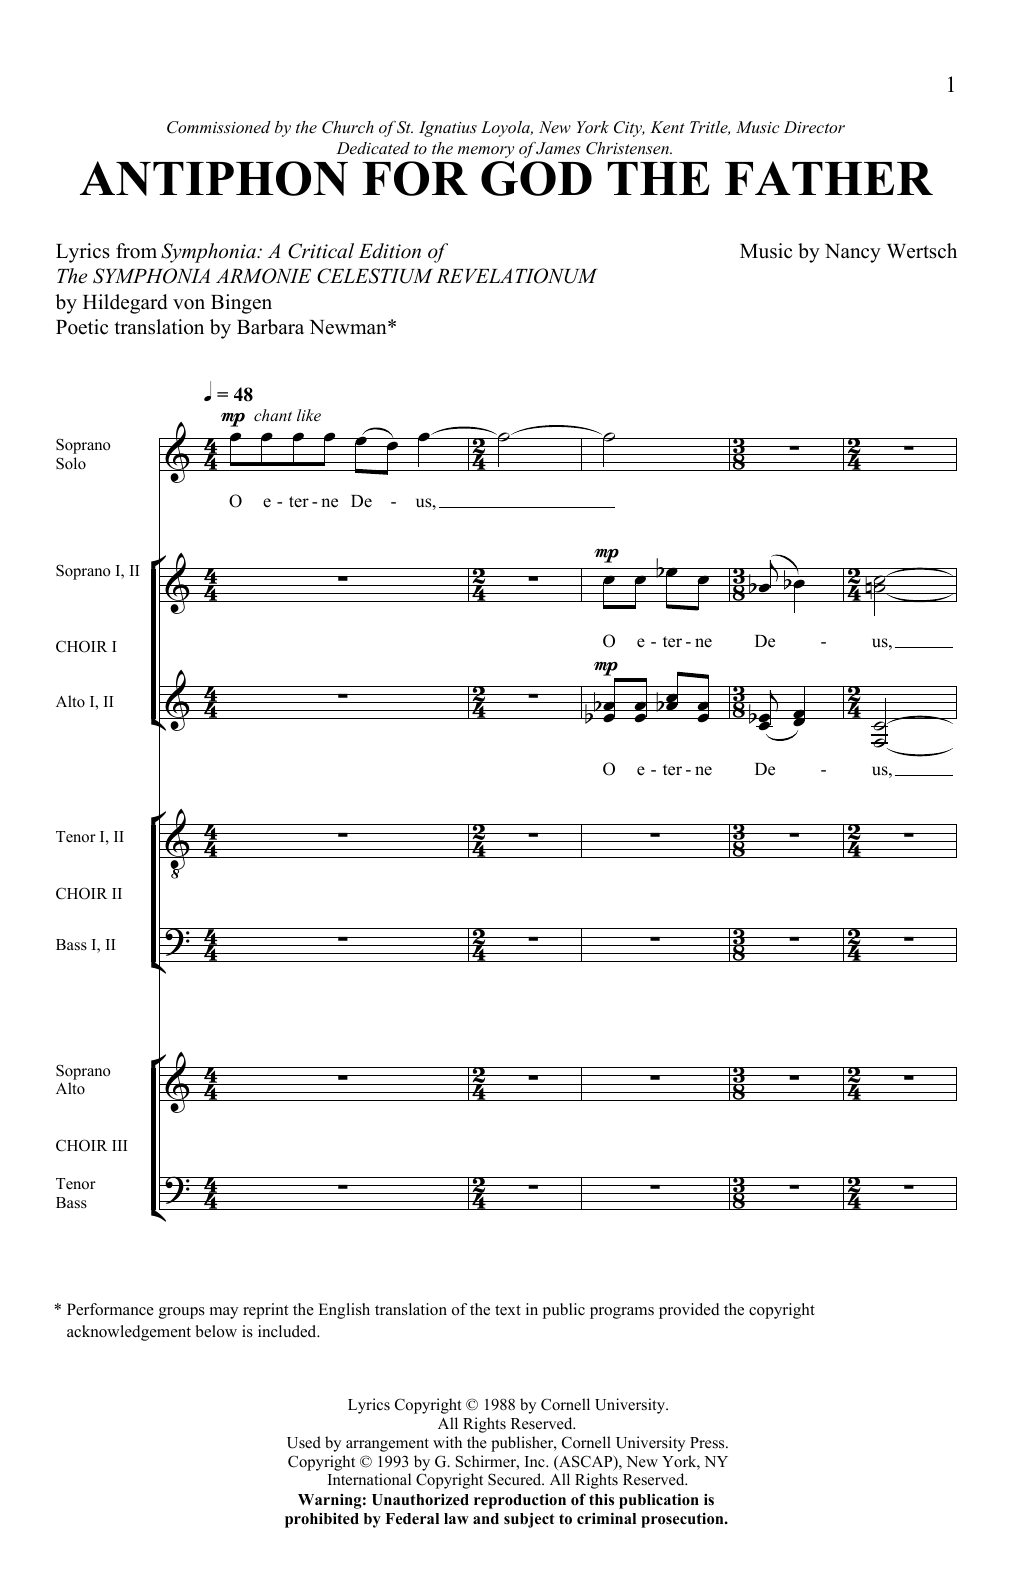 Antiphon For God The Father (SATB Choir)